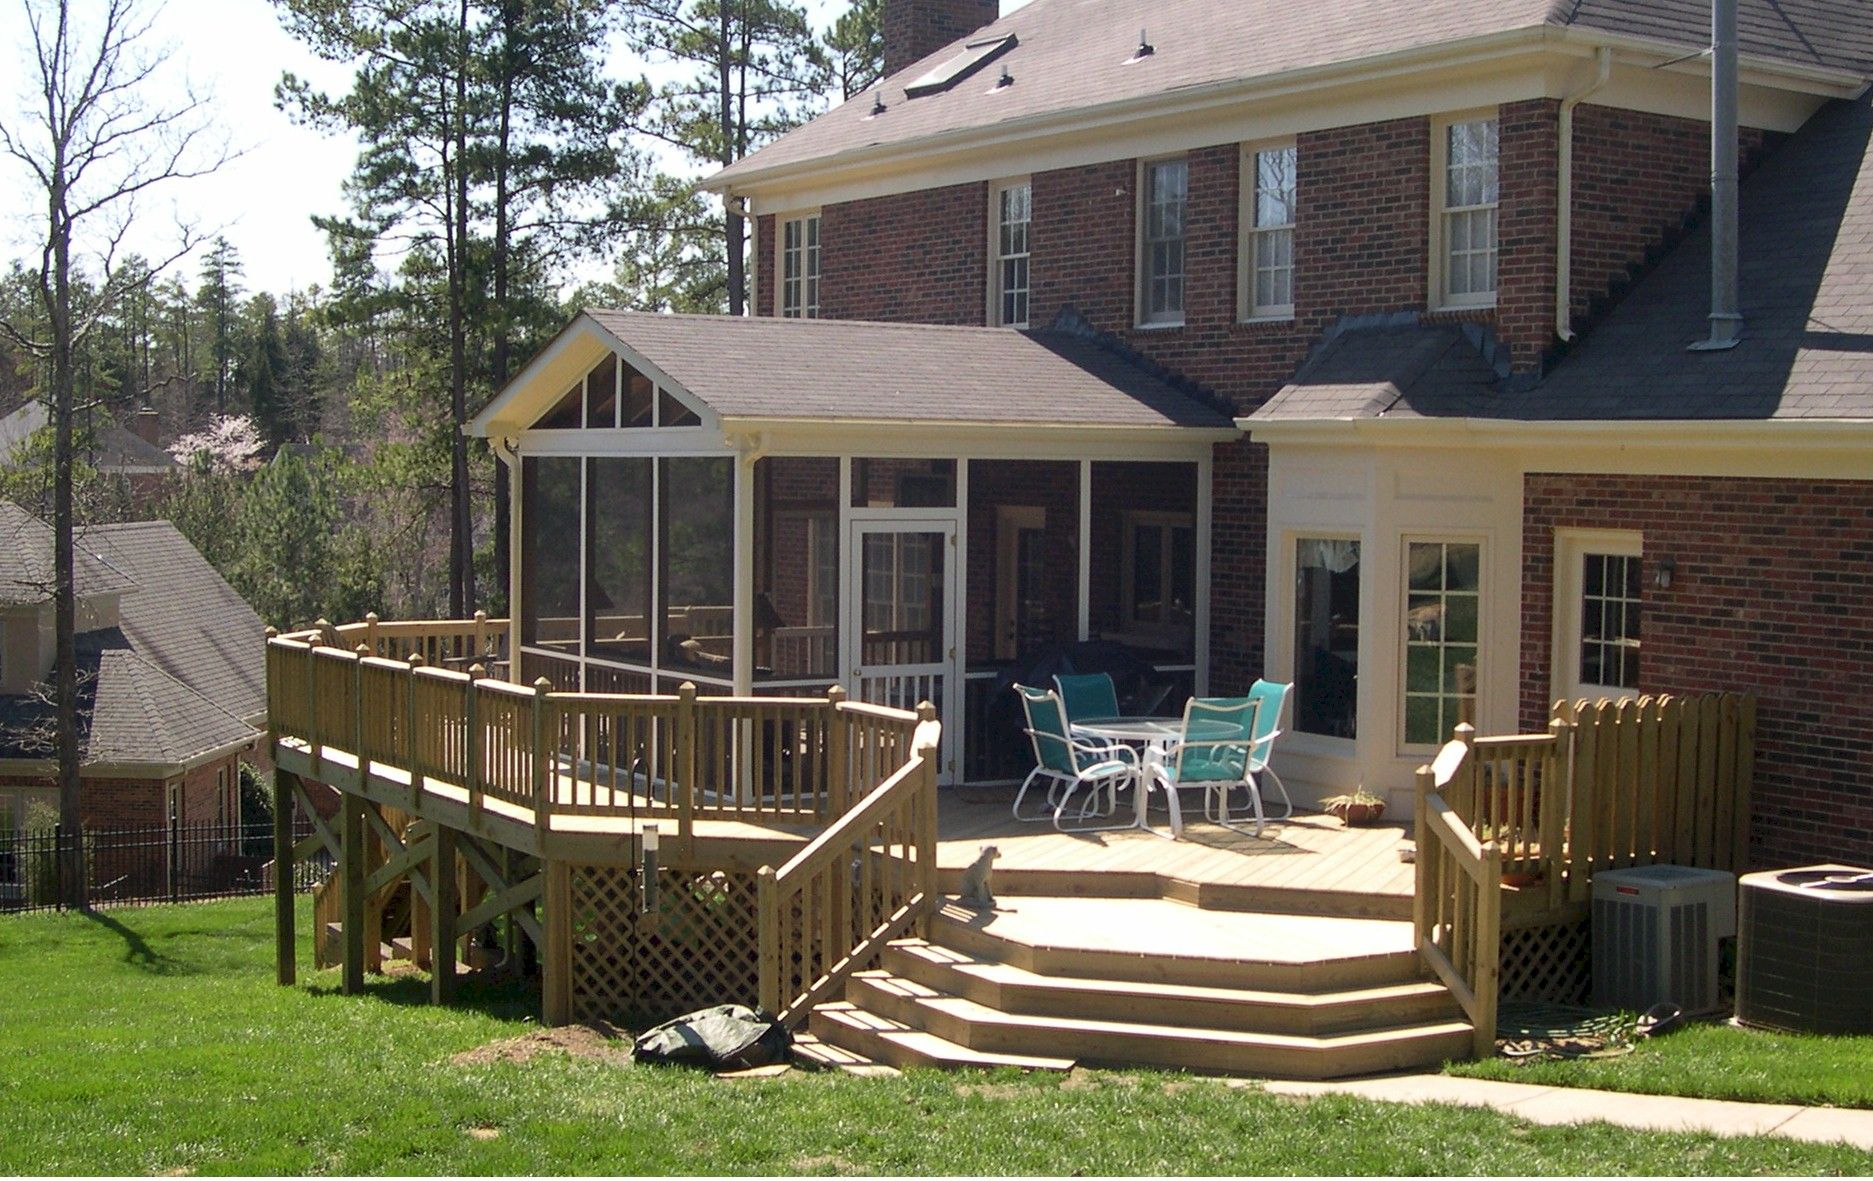 Screened In Porch Ideas Design three season porch design ideas porch systems with screen porch railing Find This Pin And More On Screened Porch Ideas